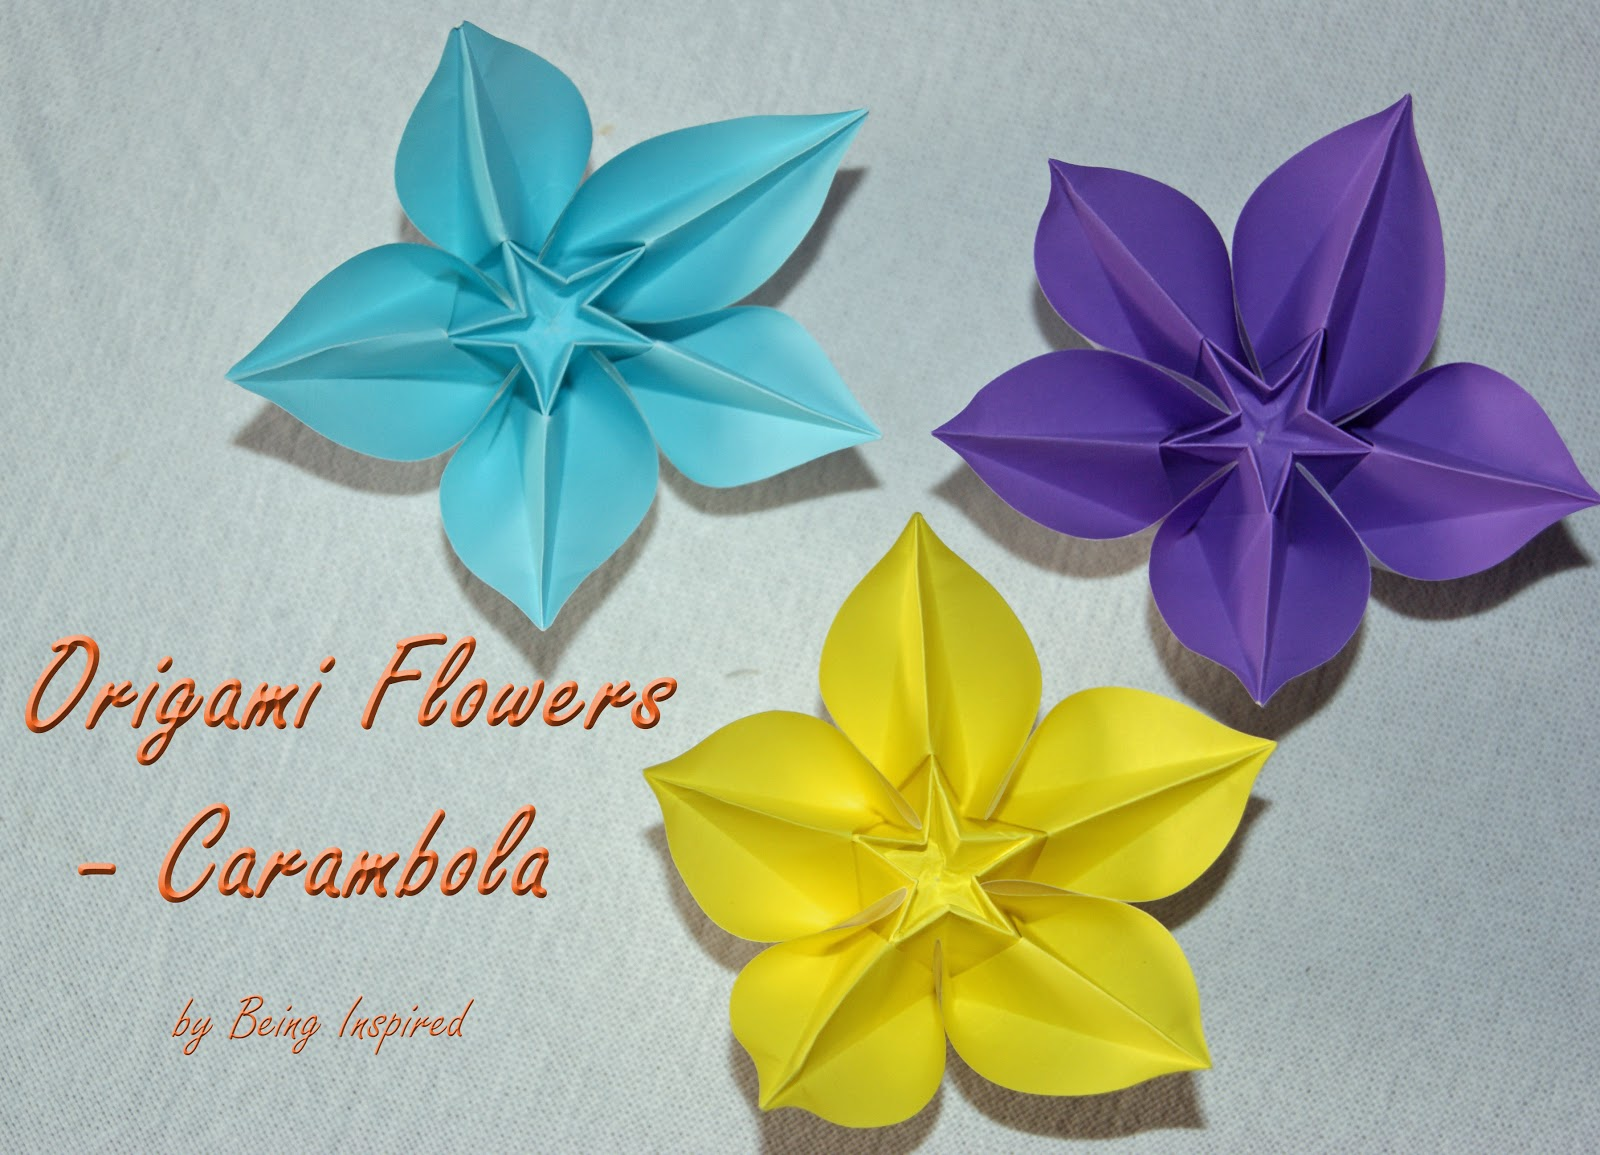 Carambola Flower Origami Diagram Homelite Leaf Blower Parts Being Inspired Flowers